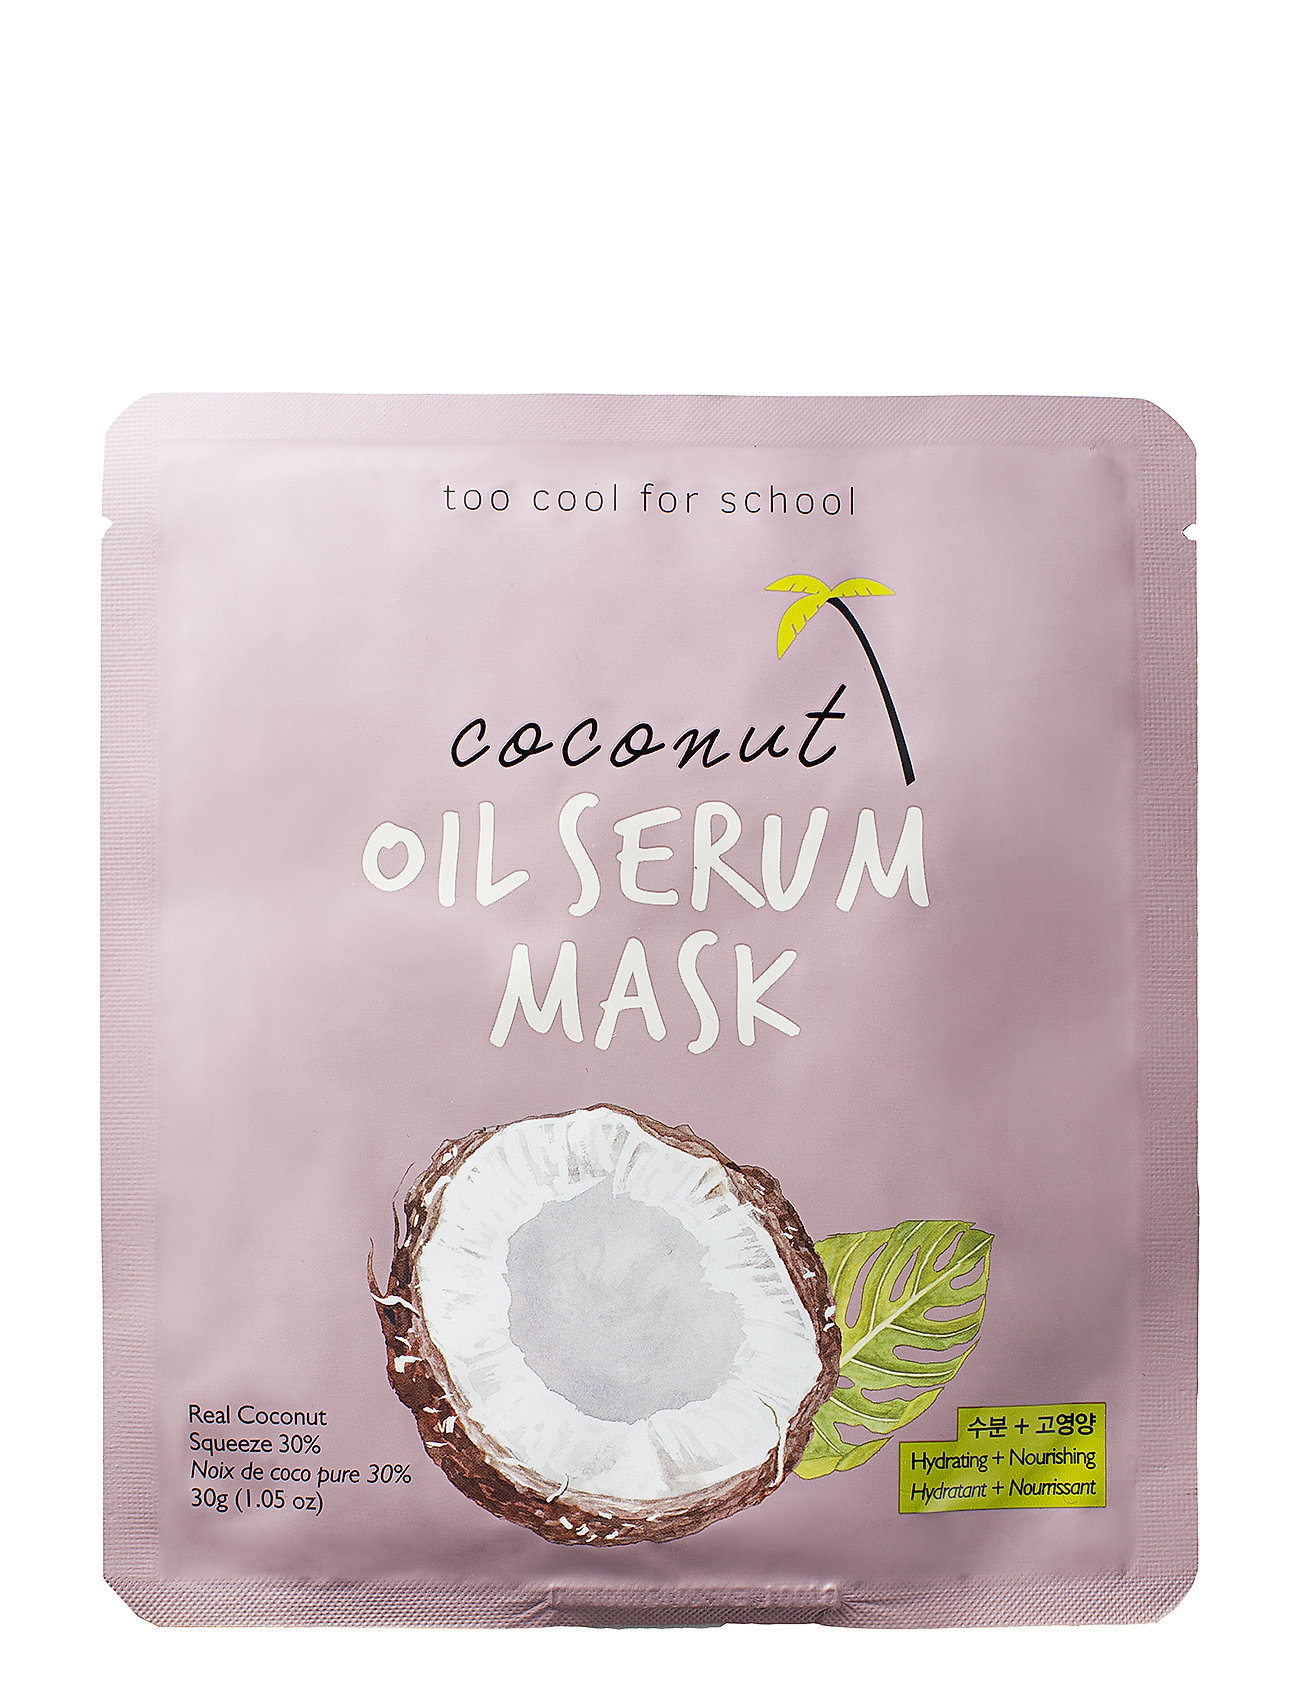 Too Cool For School Too Cool For School Coconut Oil Serum Mask - CLEAR